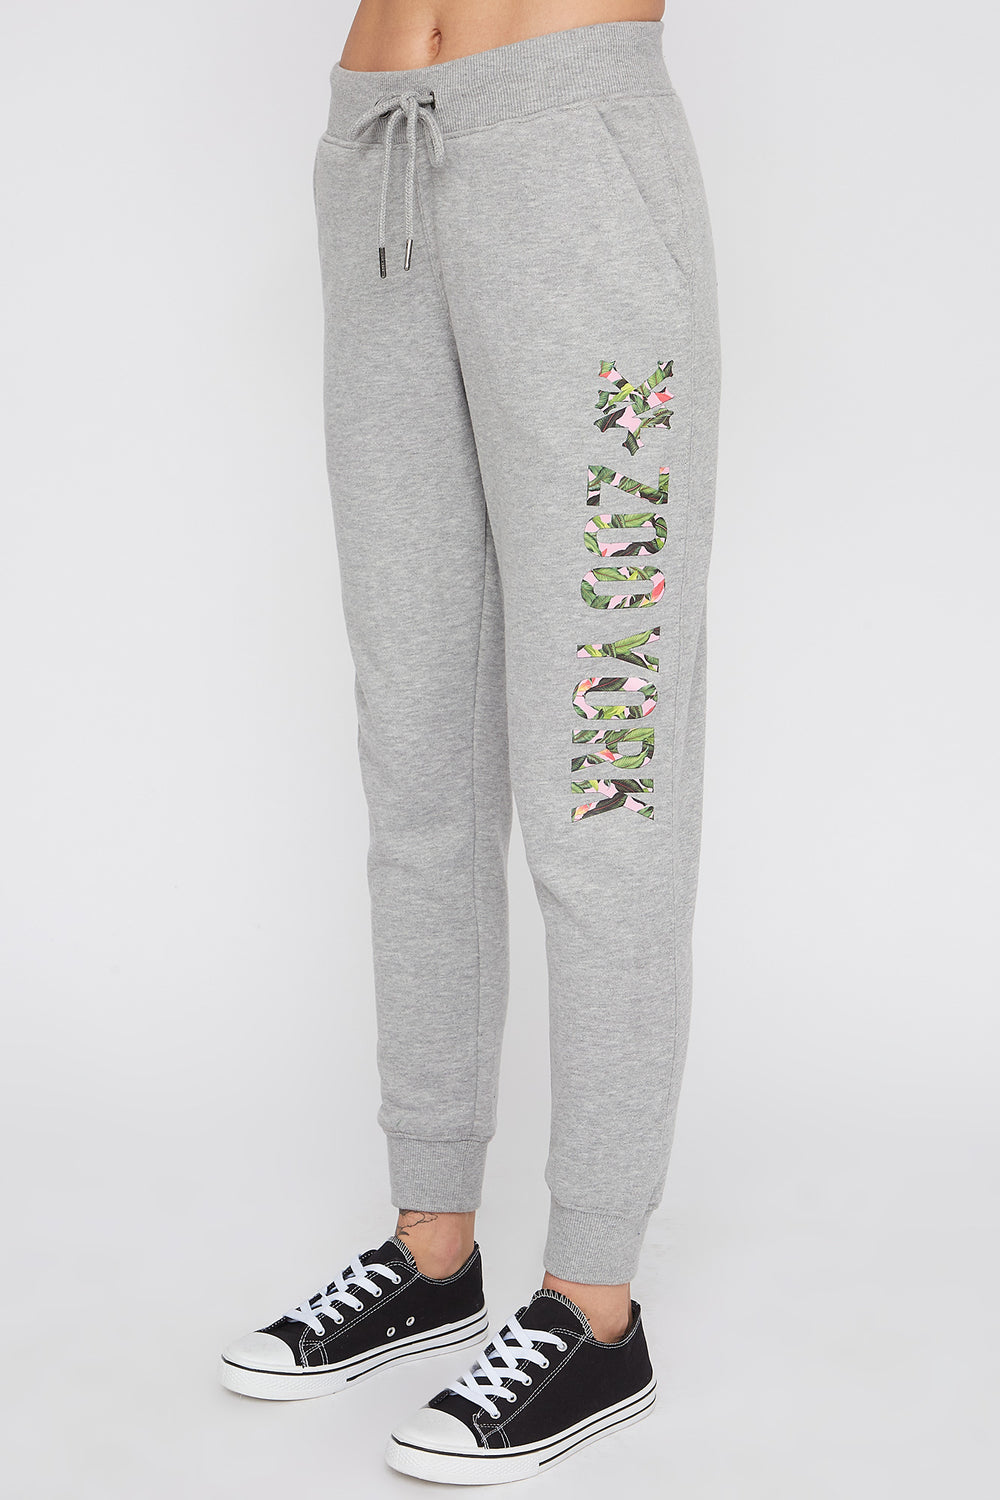 Zoo York Womens 3-Pocket Tropical Logo Joggers Heather Grey